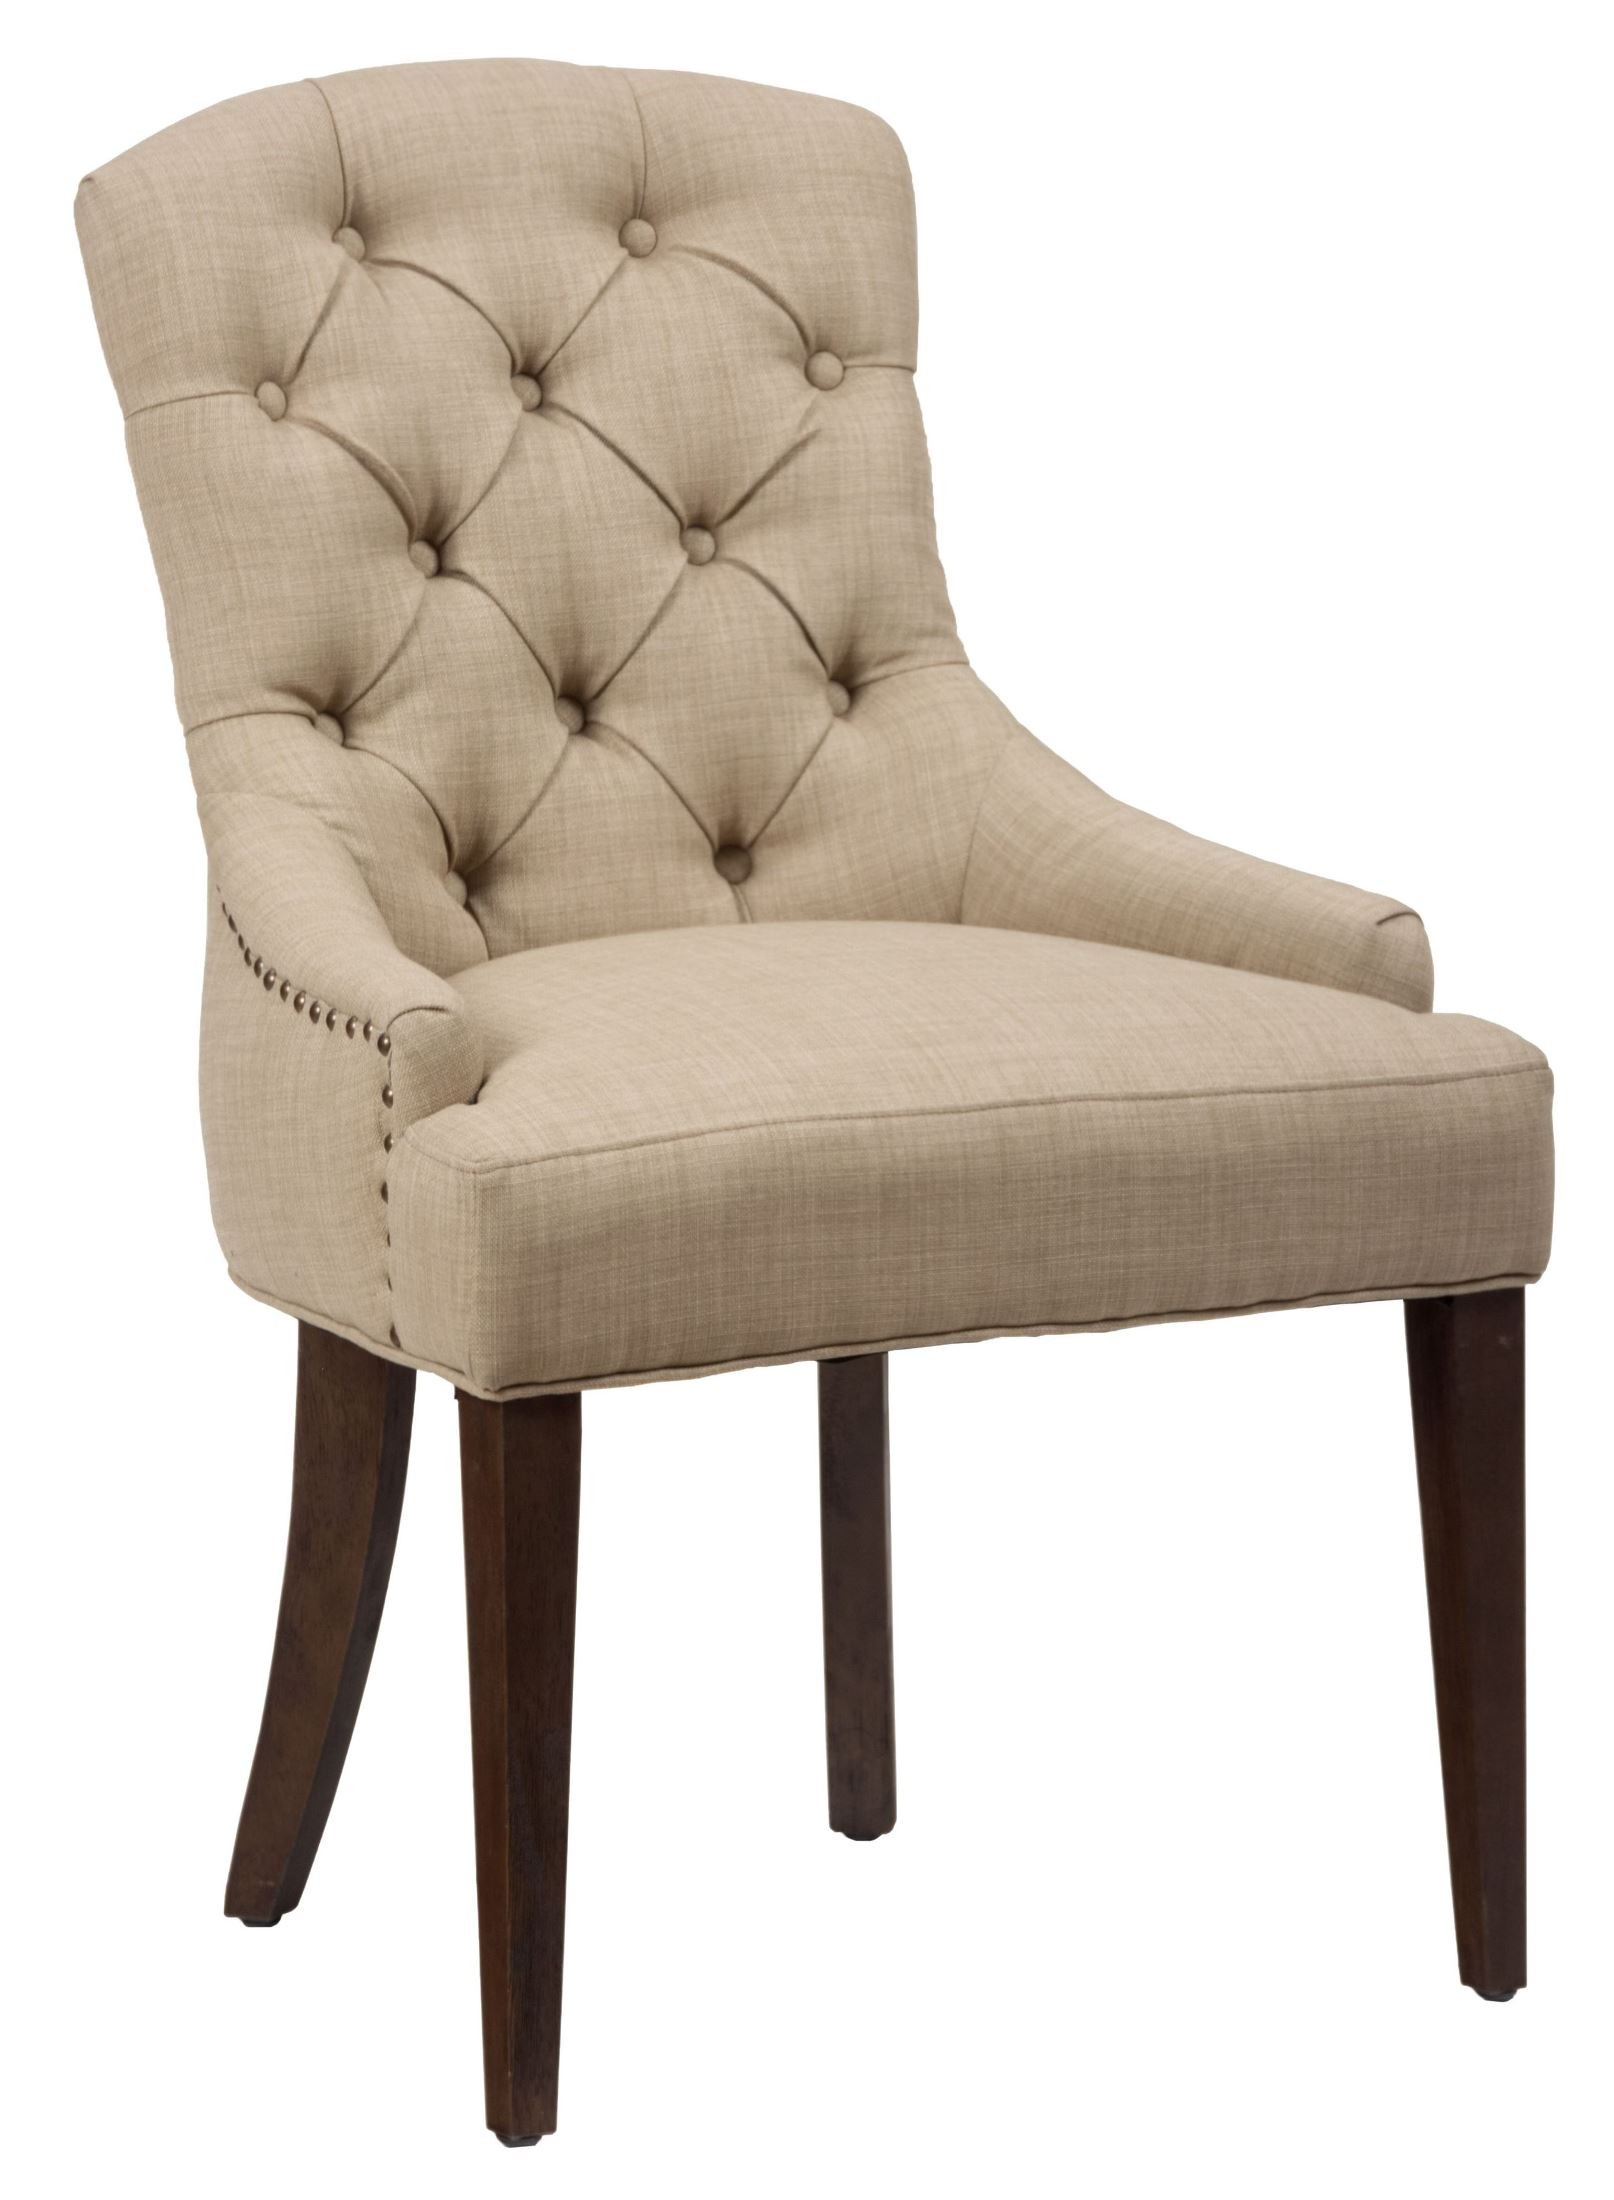 tufted side chair design theory geneva hills rustic brown set of 2 from